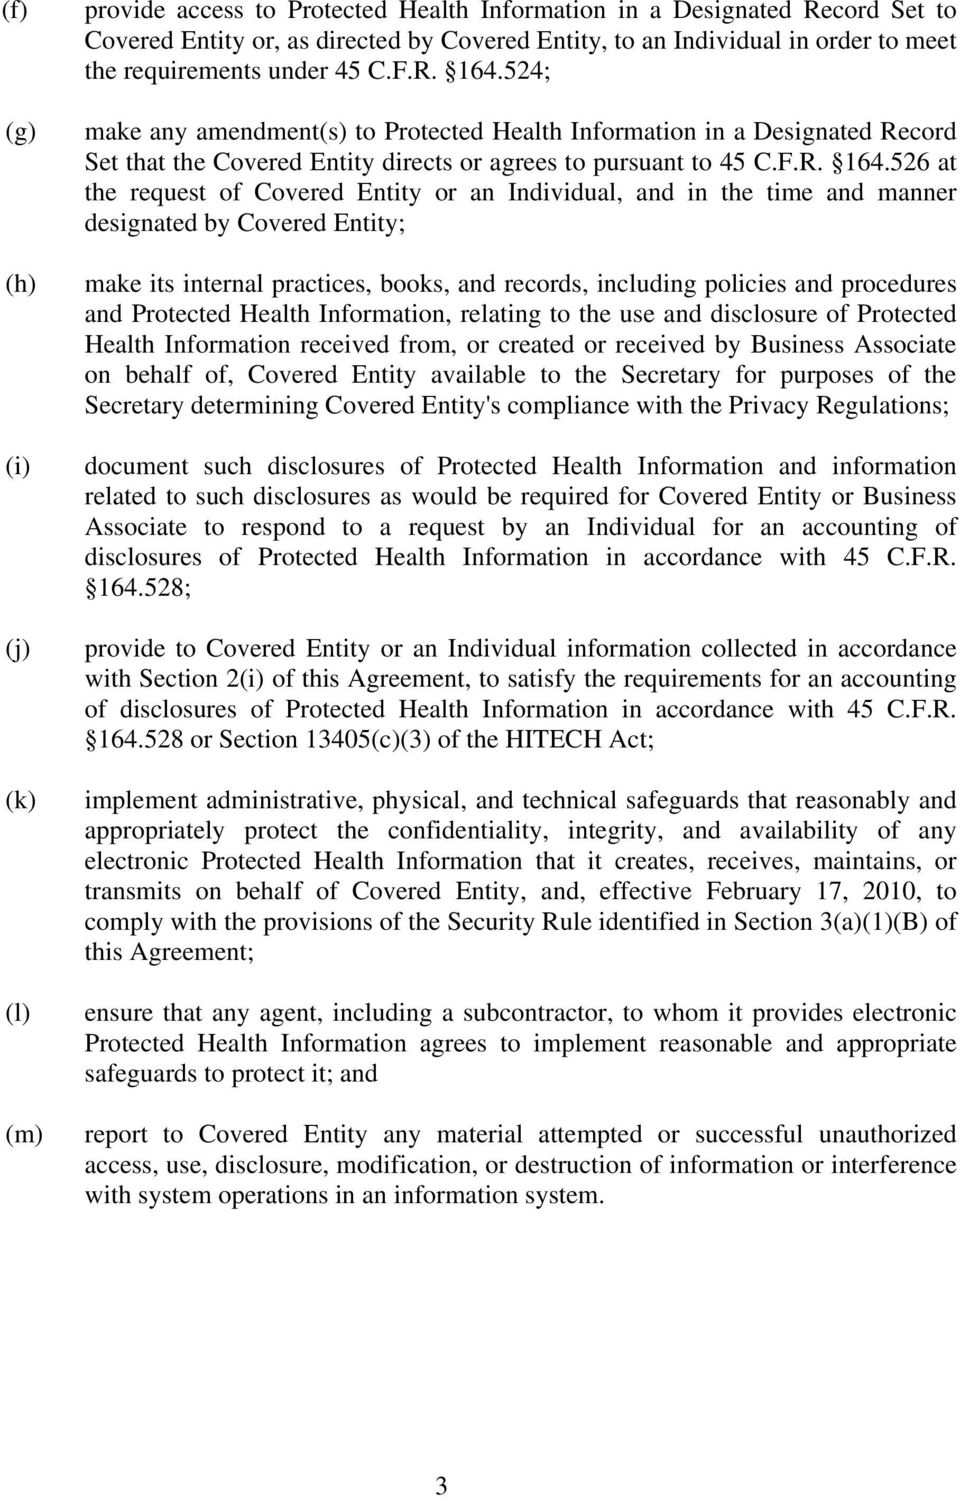 524; make any amendment(s) to Protected Health Information in a Designated Record Set that the Covered Entity directs or agrees to pursuant to 45 C.F.R. 164.